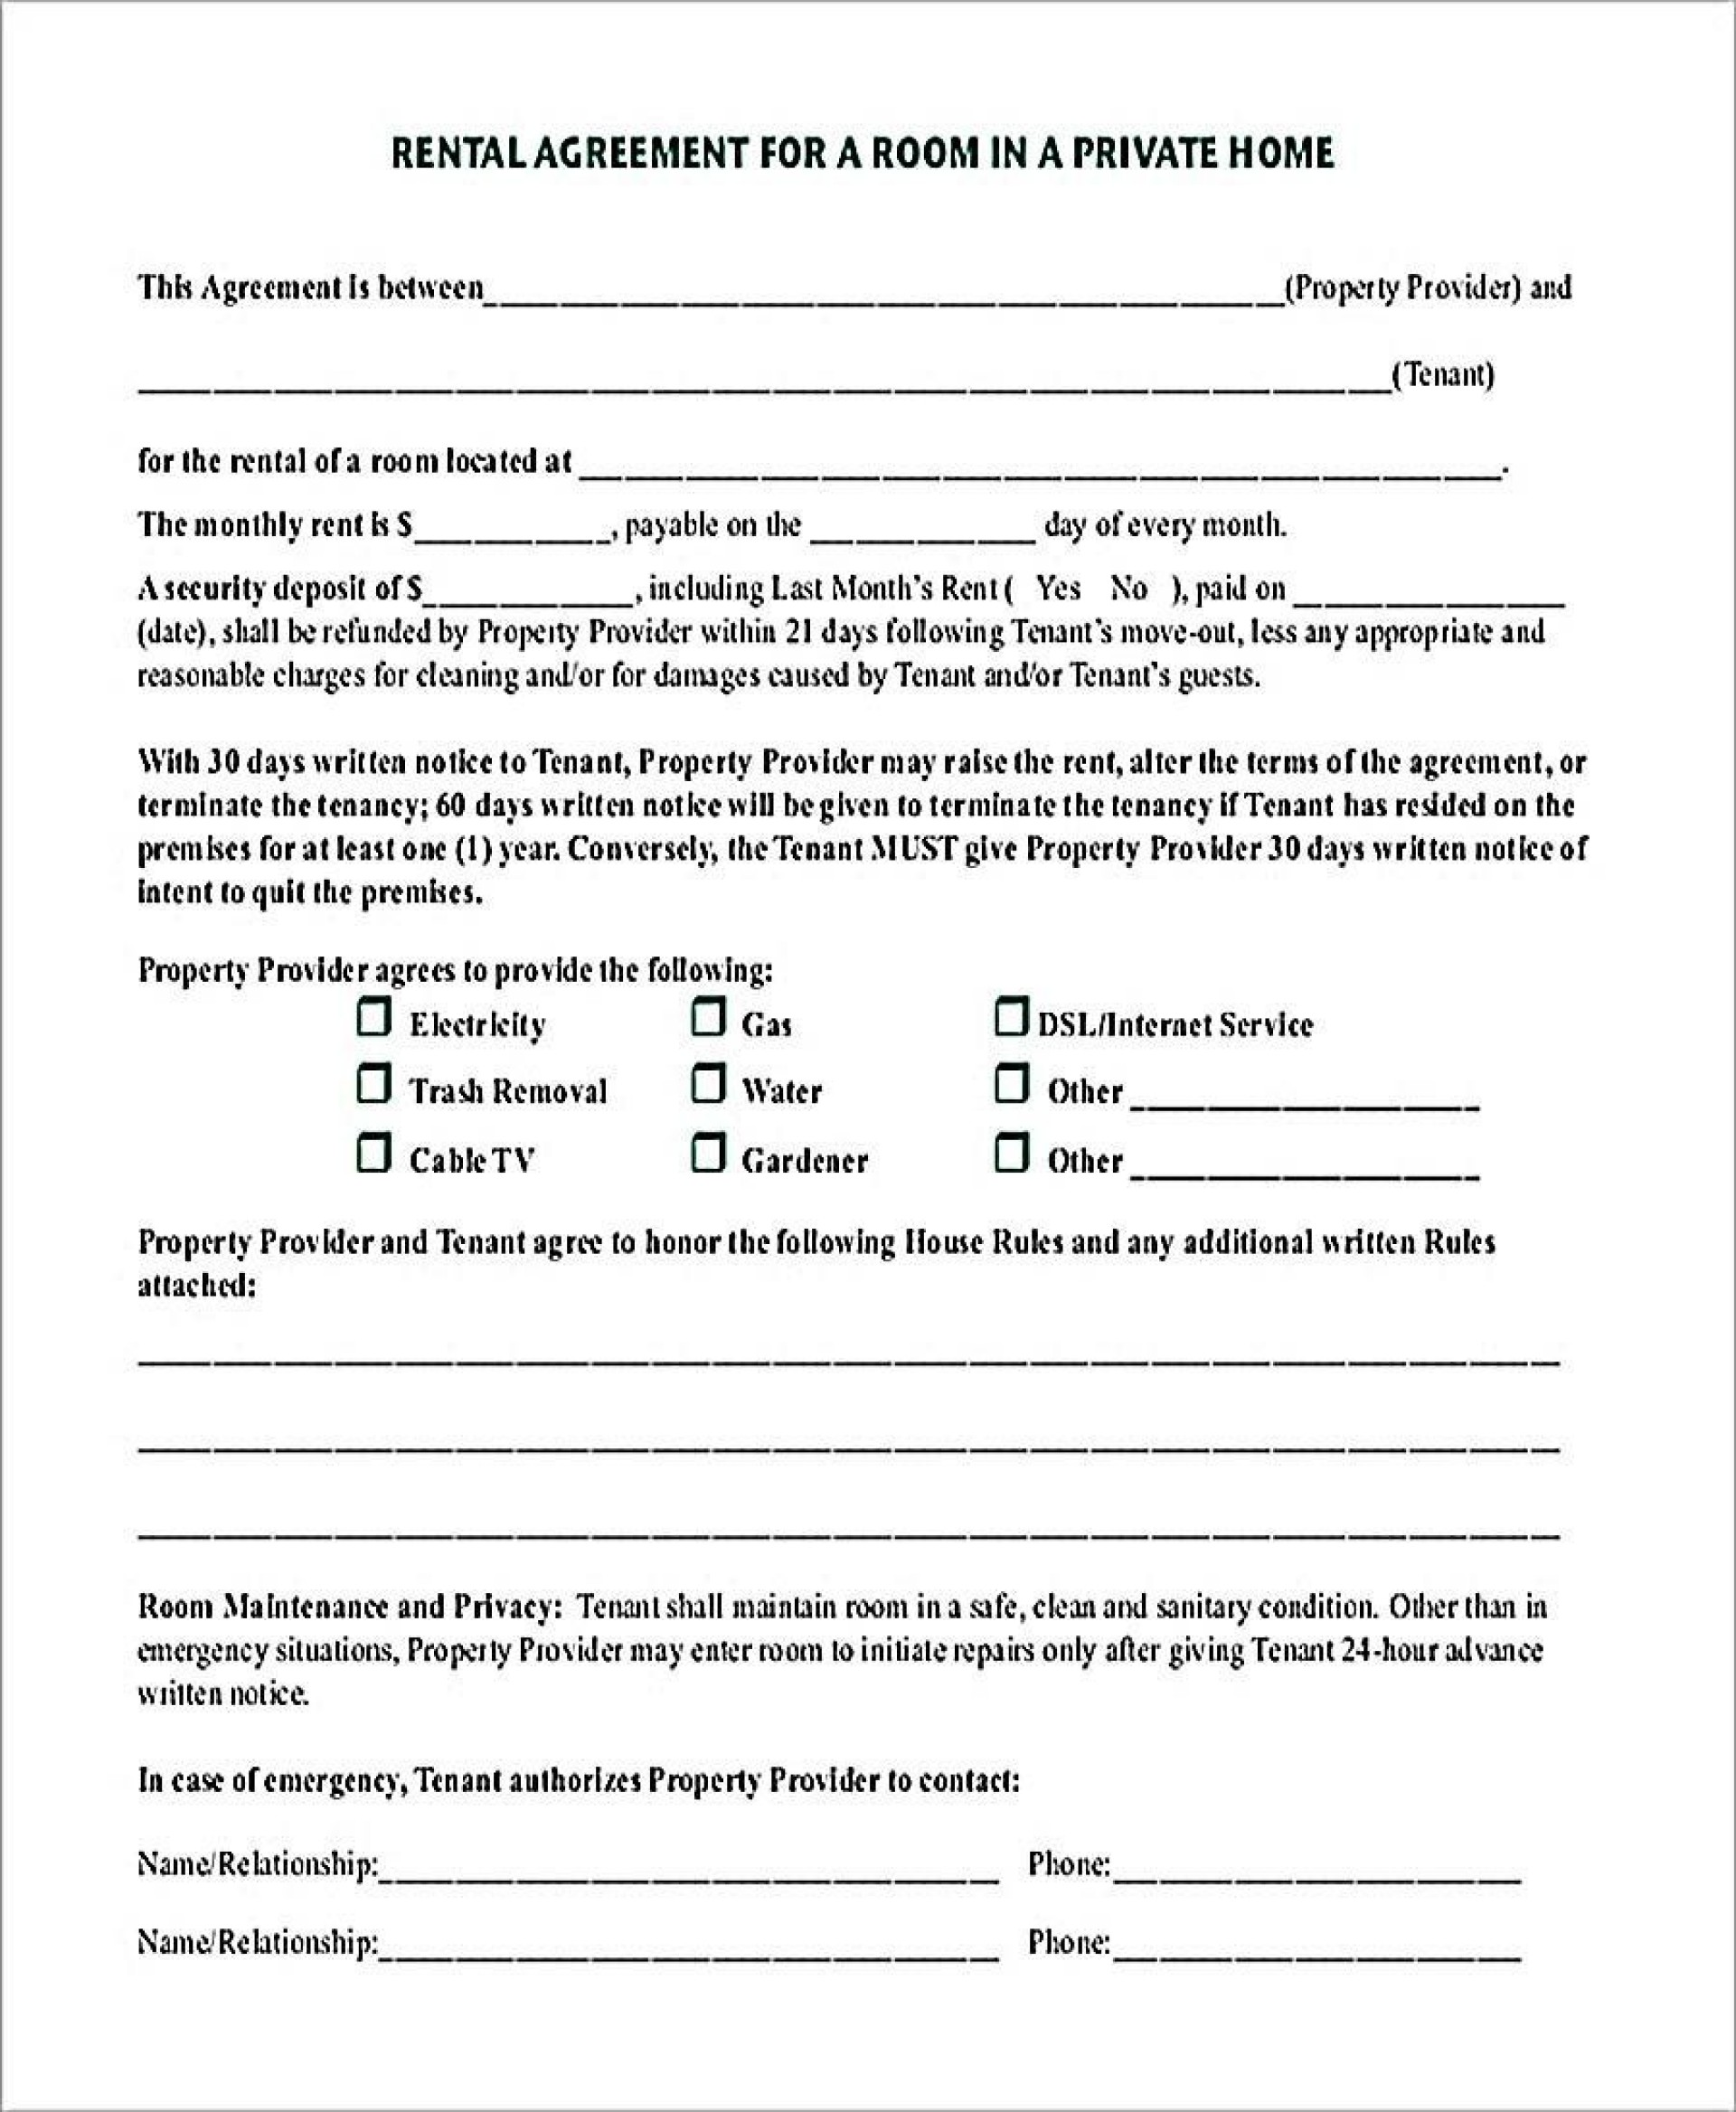 003 Unbelievable Rental House Contract Template Free Highest Quality  Agreement Form Property Lease1920